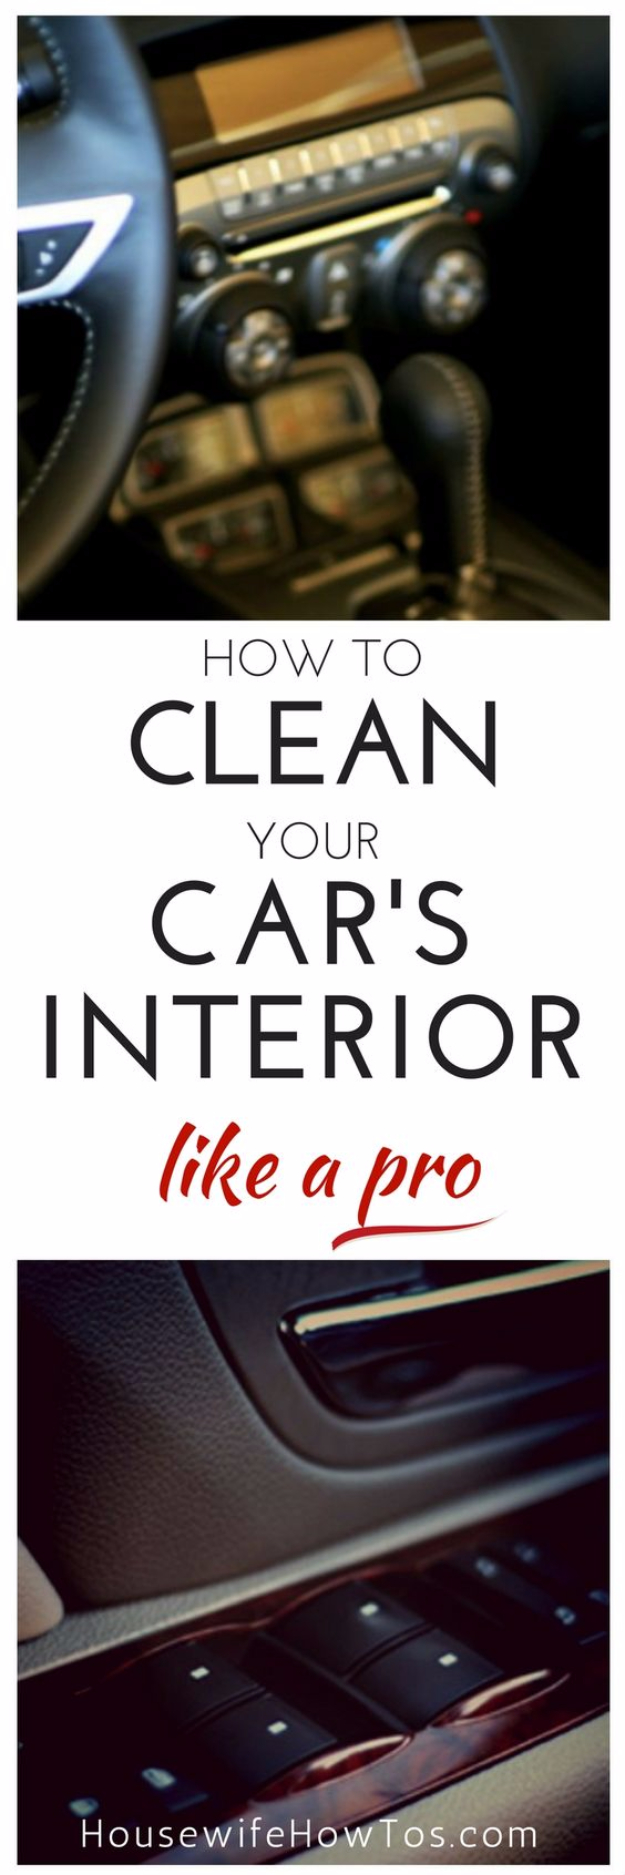 DIY Car Accessories and Ideas for Cars - Clean Your Car's Interior Like A Pro - Interior and Exterior, Seats, Mirror, Seat Covers, Storage, Carpet and Window Cleaners and Products - Decor, Keys and Iphone and Tablet Holders - DIY Projects and Crafts for Women and Men http://diyjoy.com/diy-ideas-car